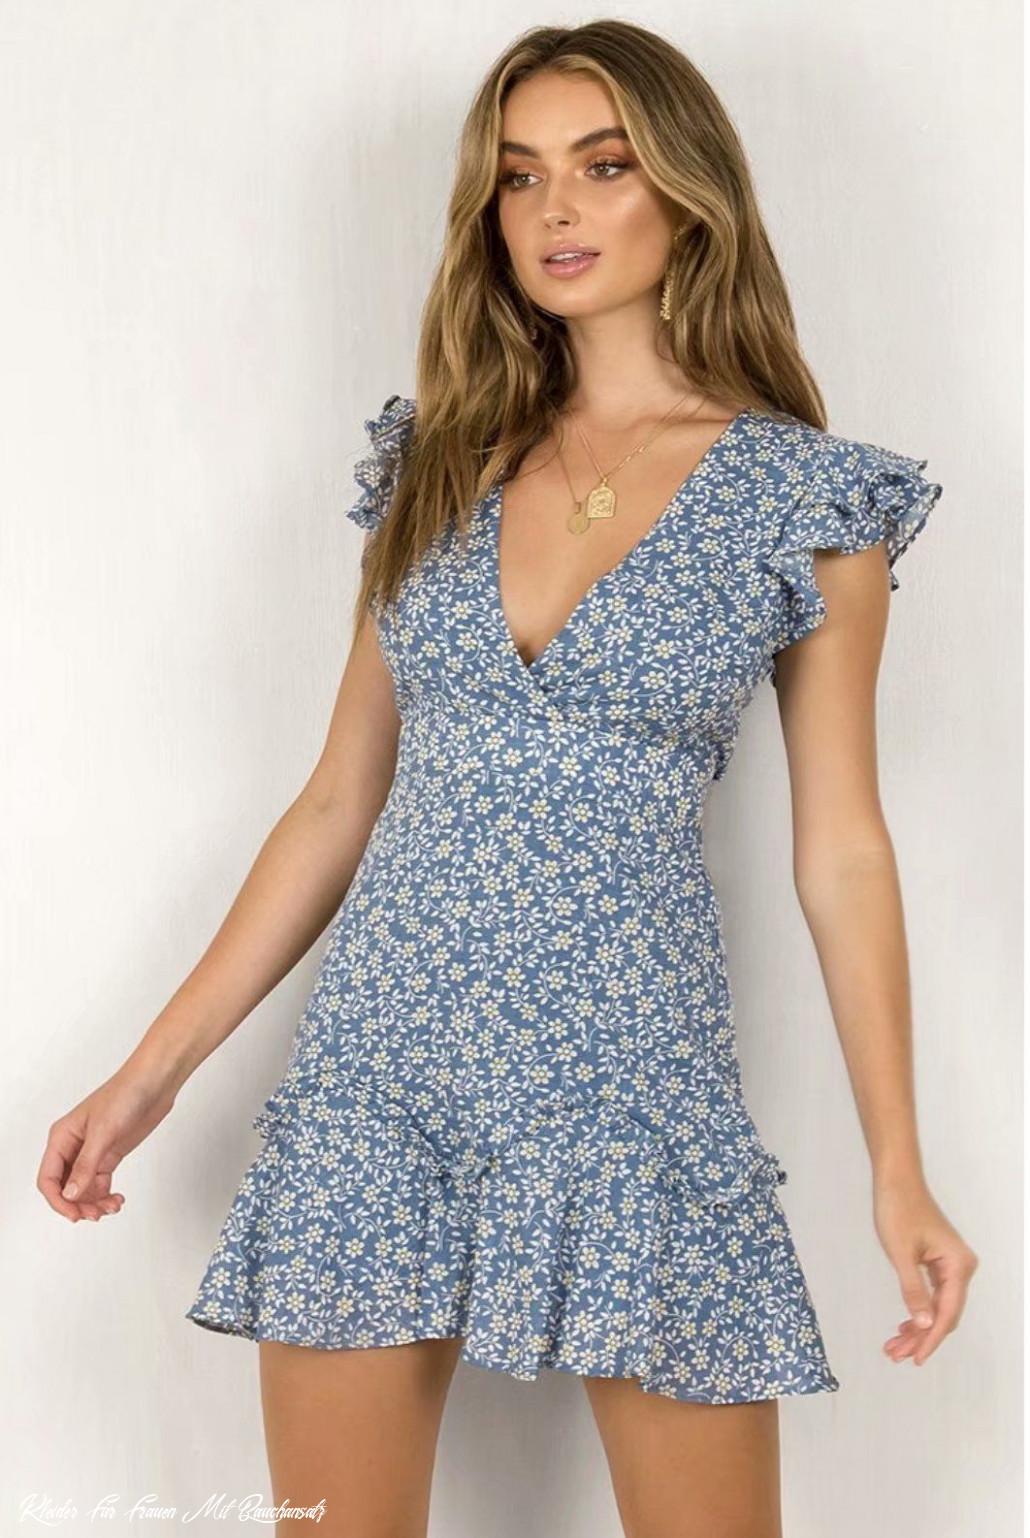 Holiday Backless Bow Blue Floral Dress In 11 Kleidung